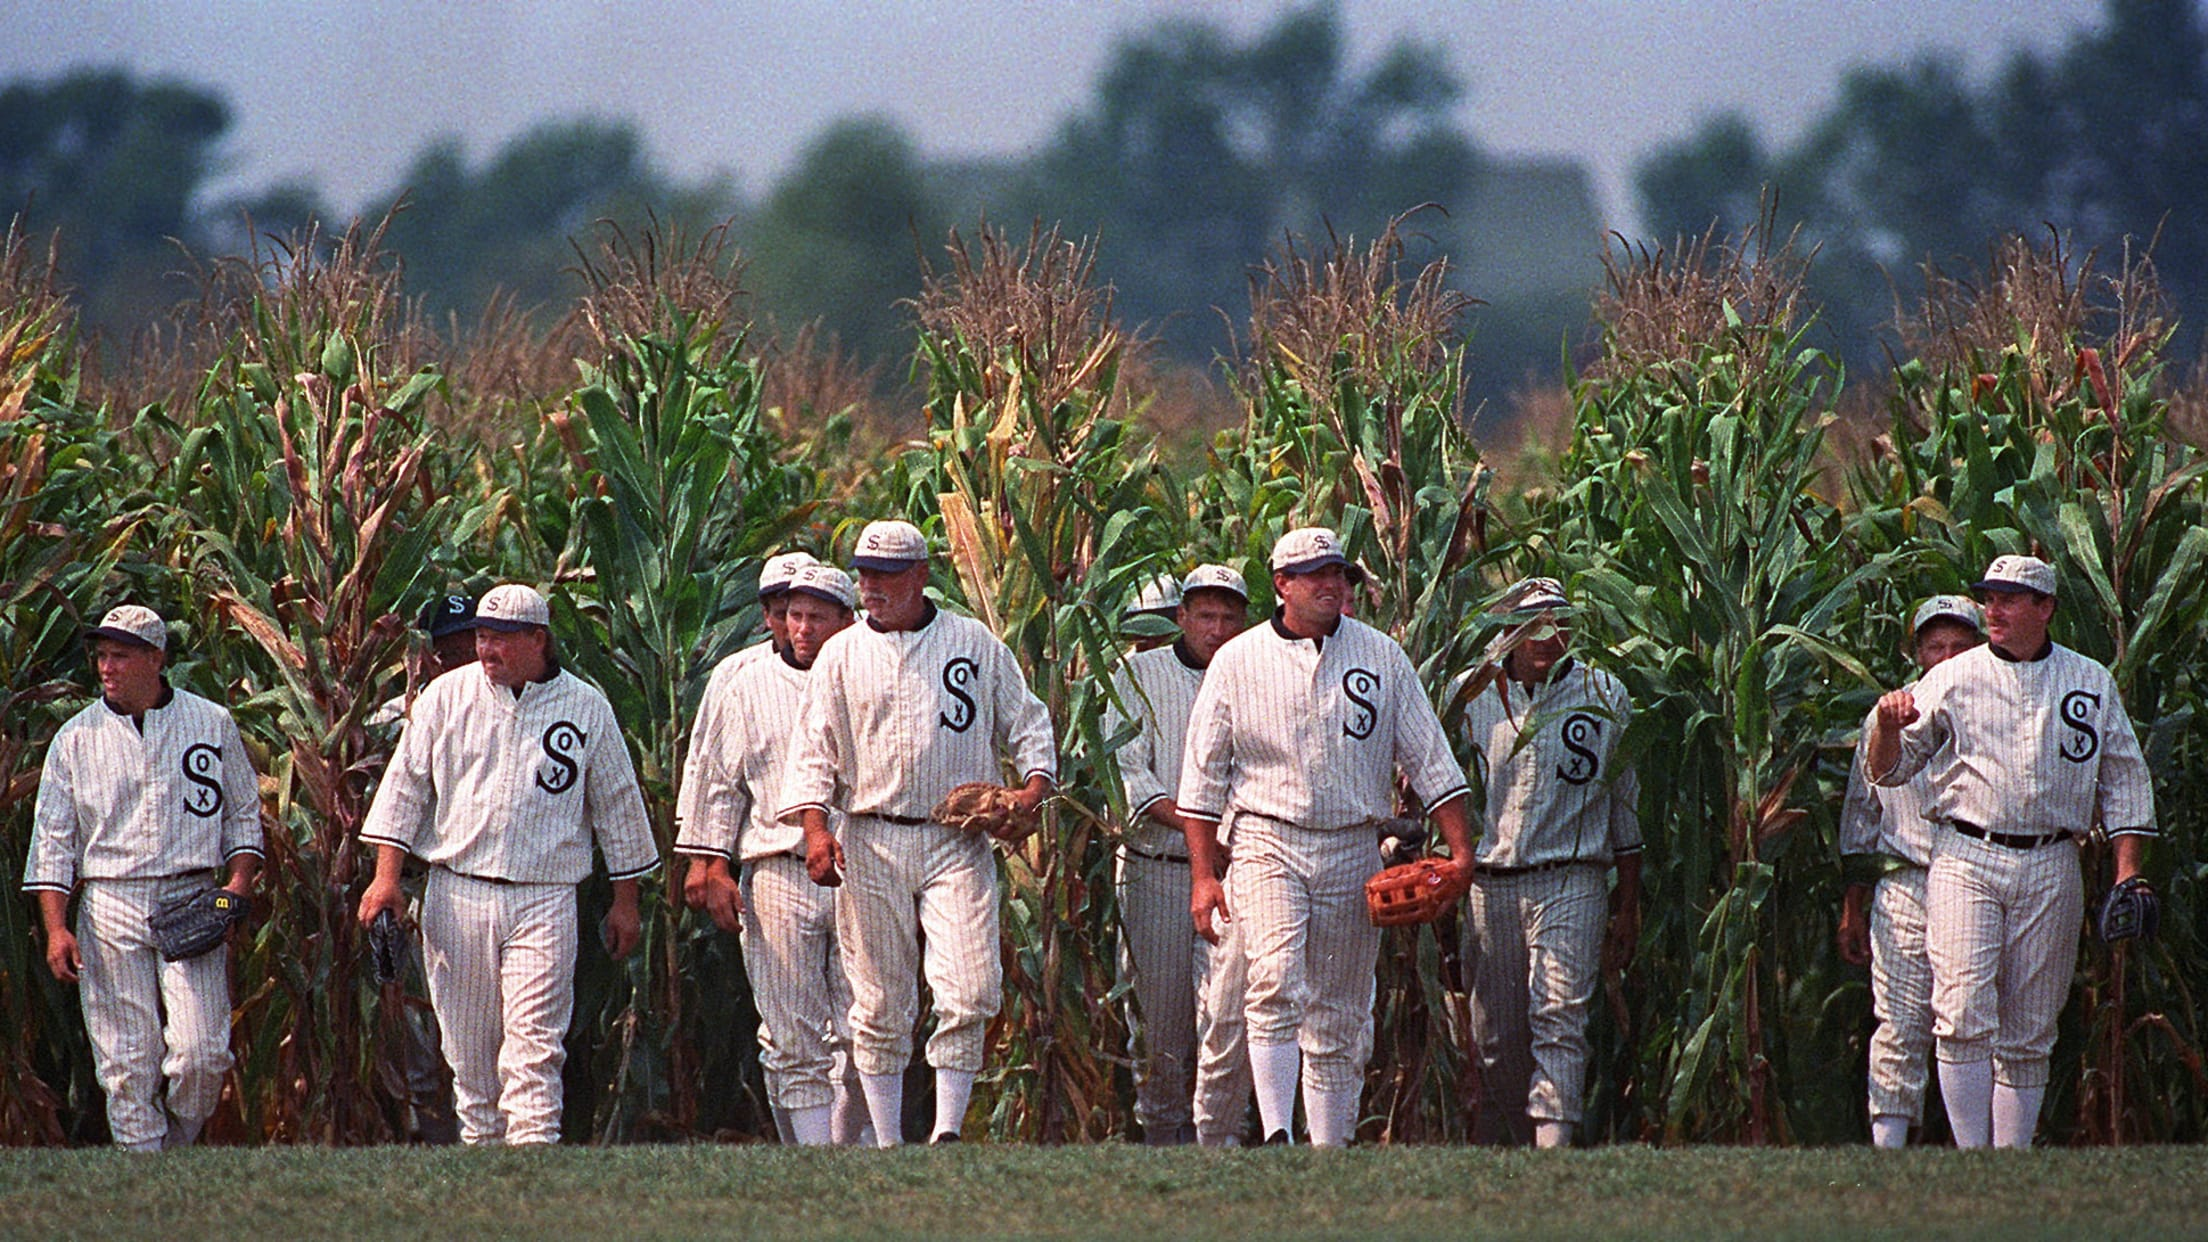 2568x1044 Field of Dreams ghost player 1997